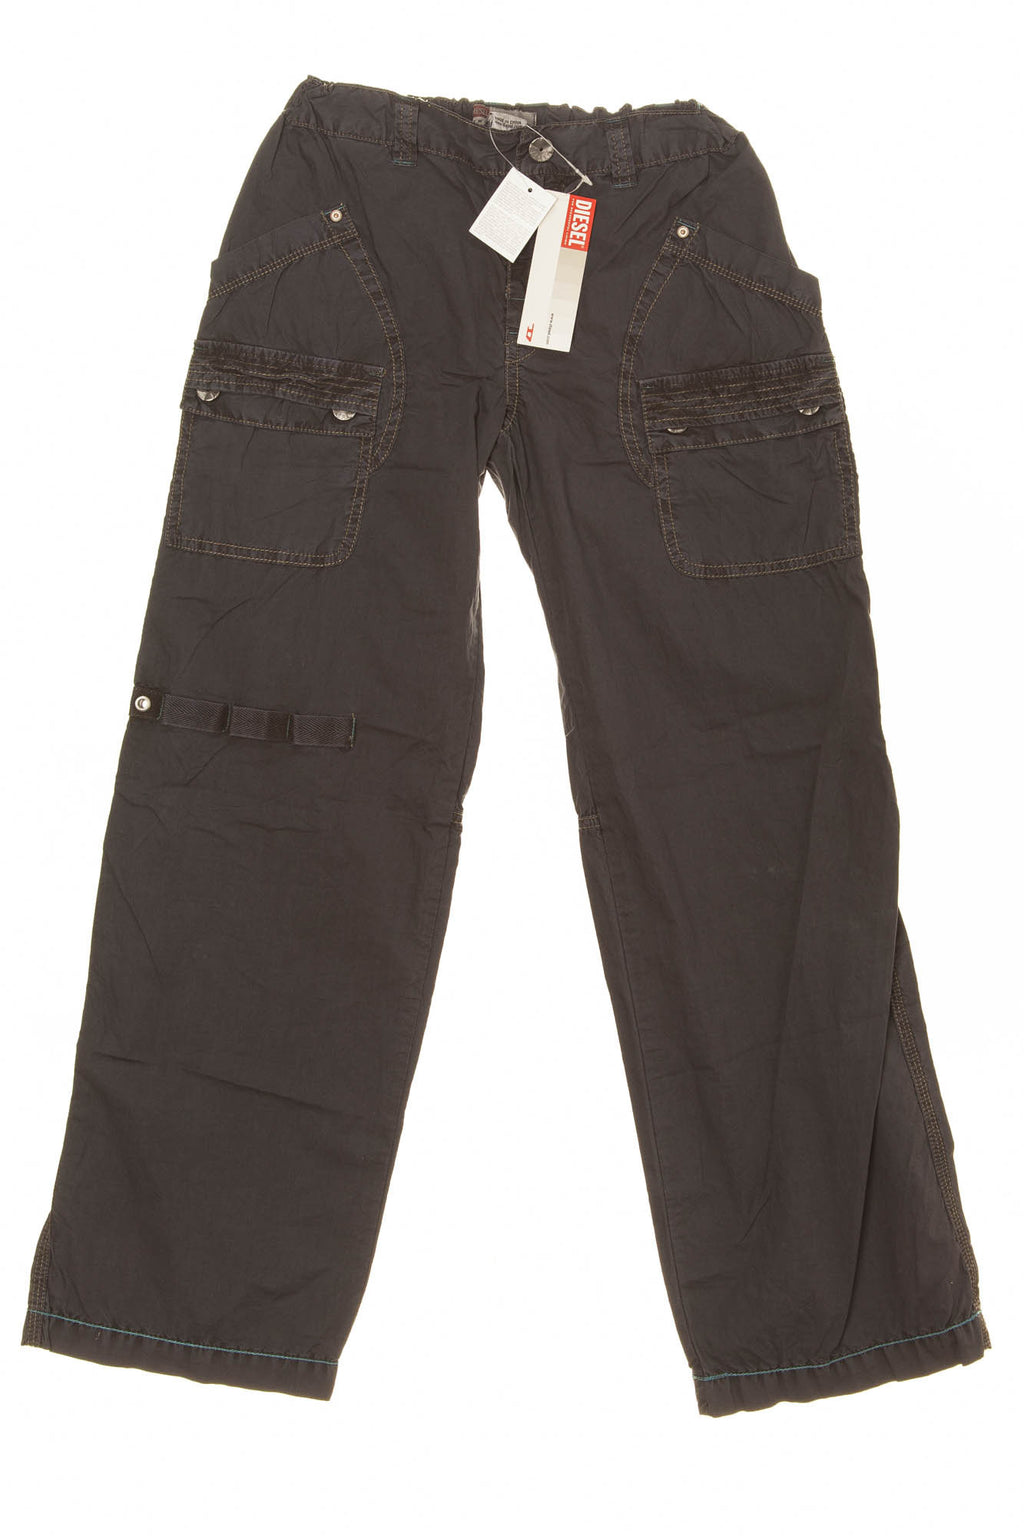 Diesel - Dark Blue Pants - 10